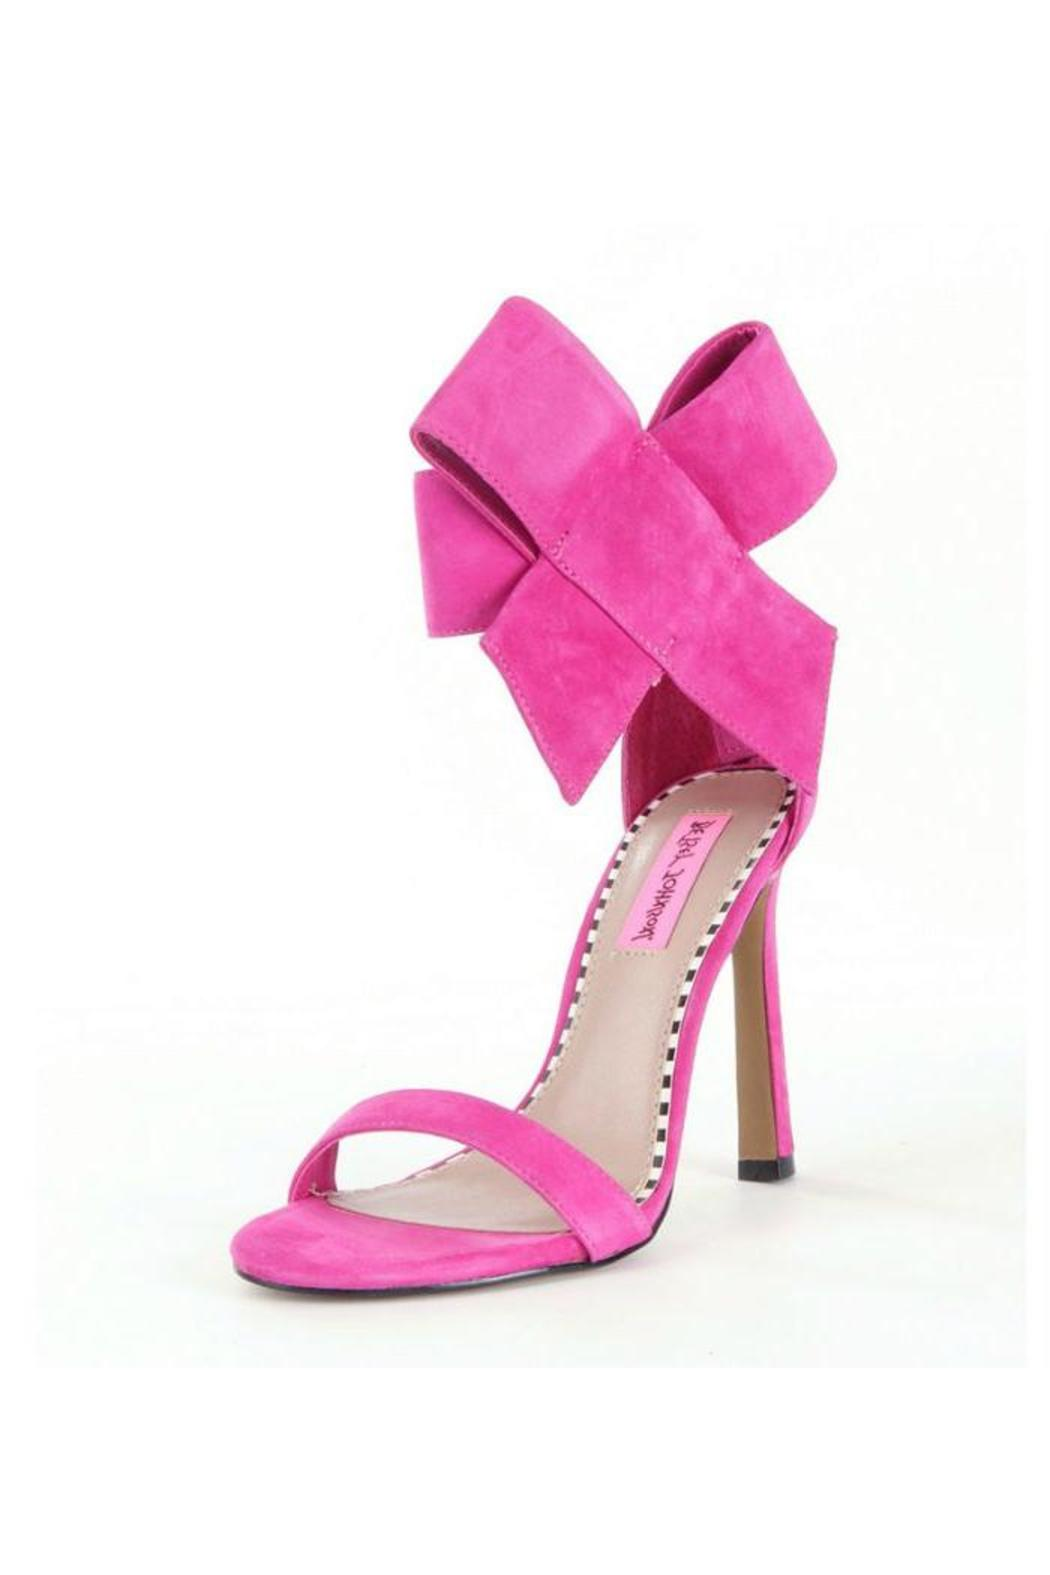 Betsey Johnson Frisky Heels from New Orleans by Nola shoes ...